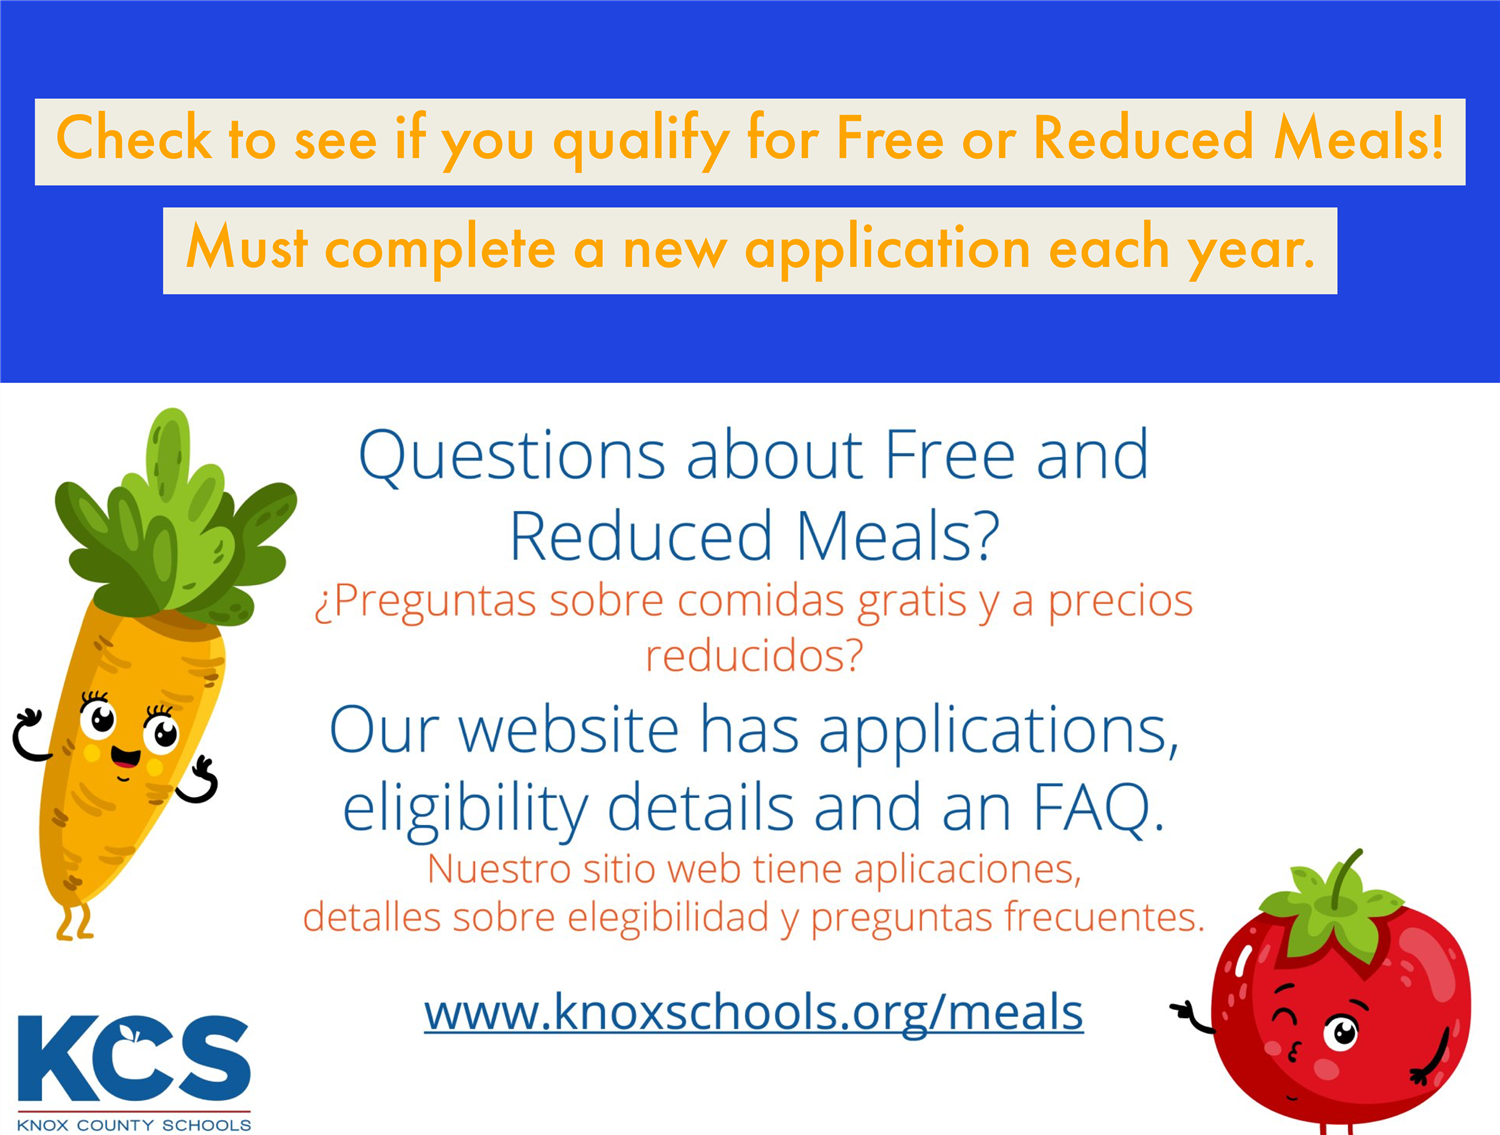 Visit www.knoxschools.org/meals